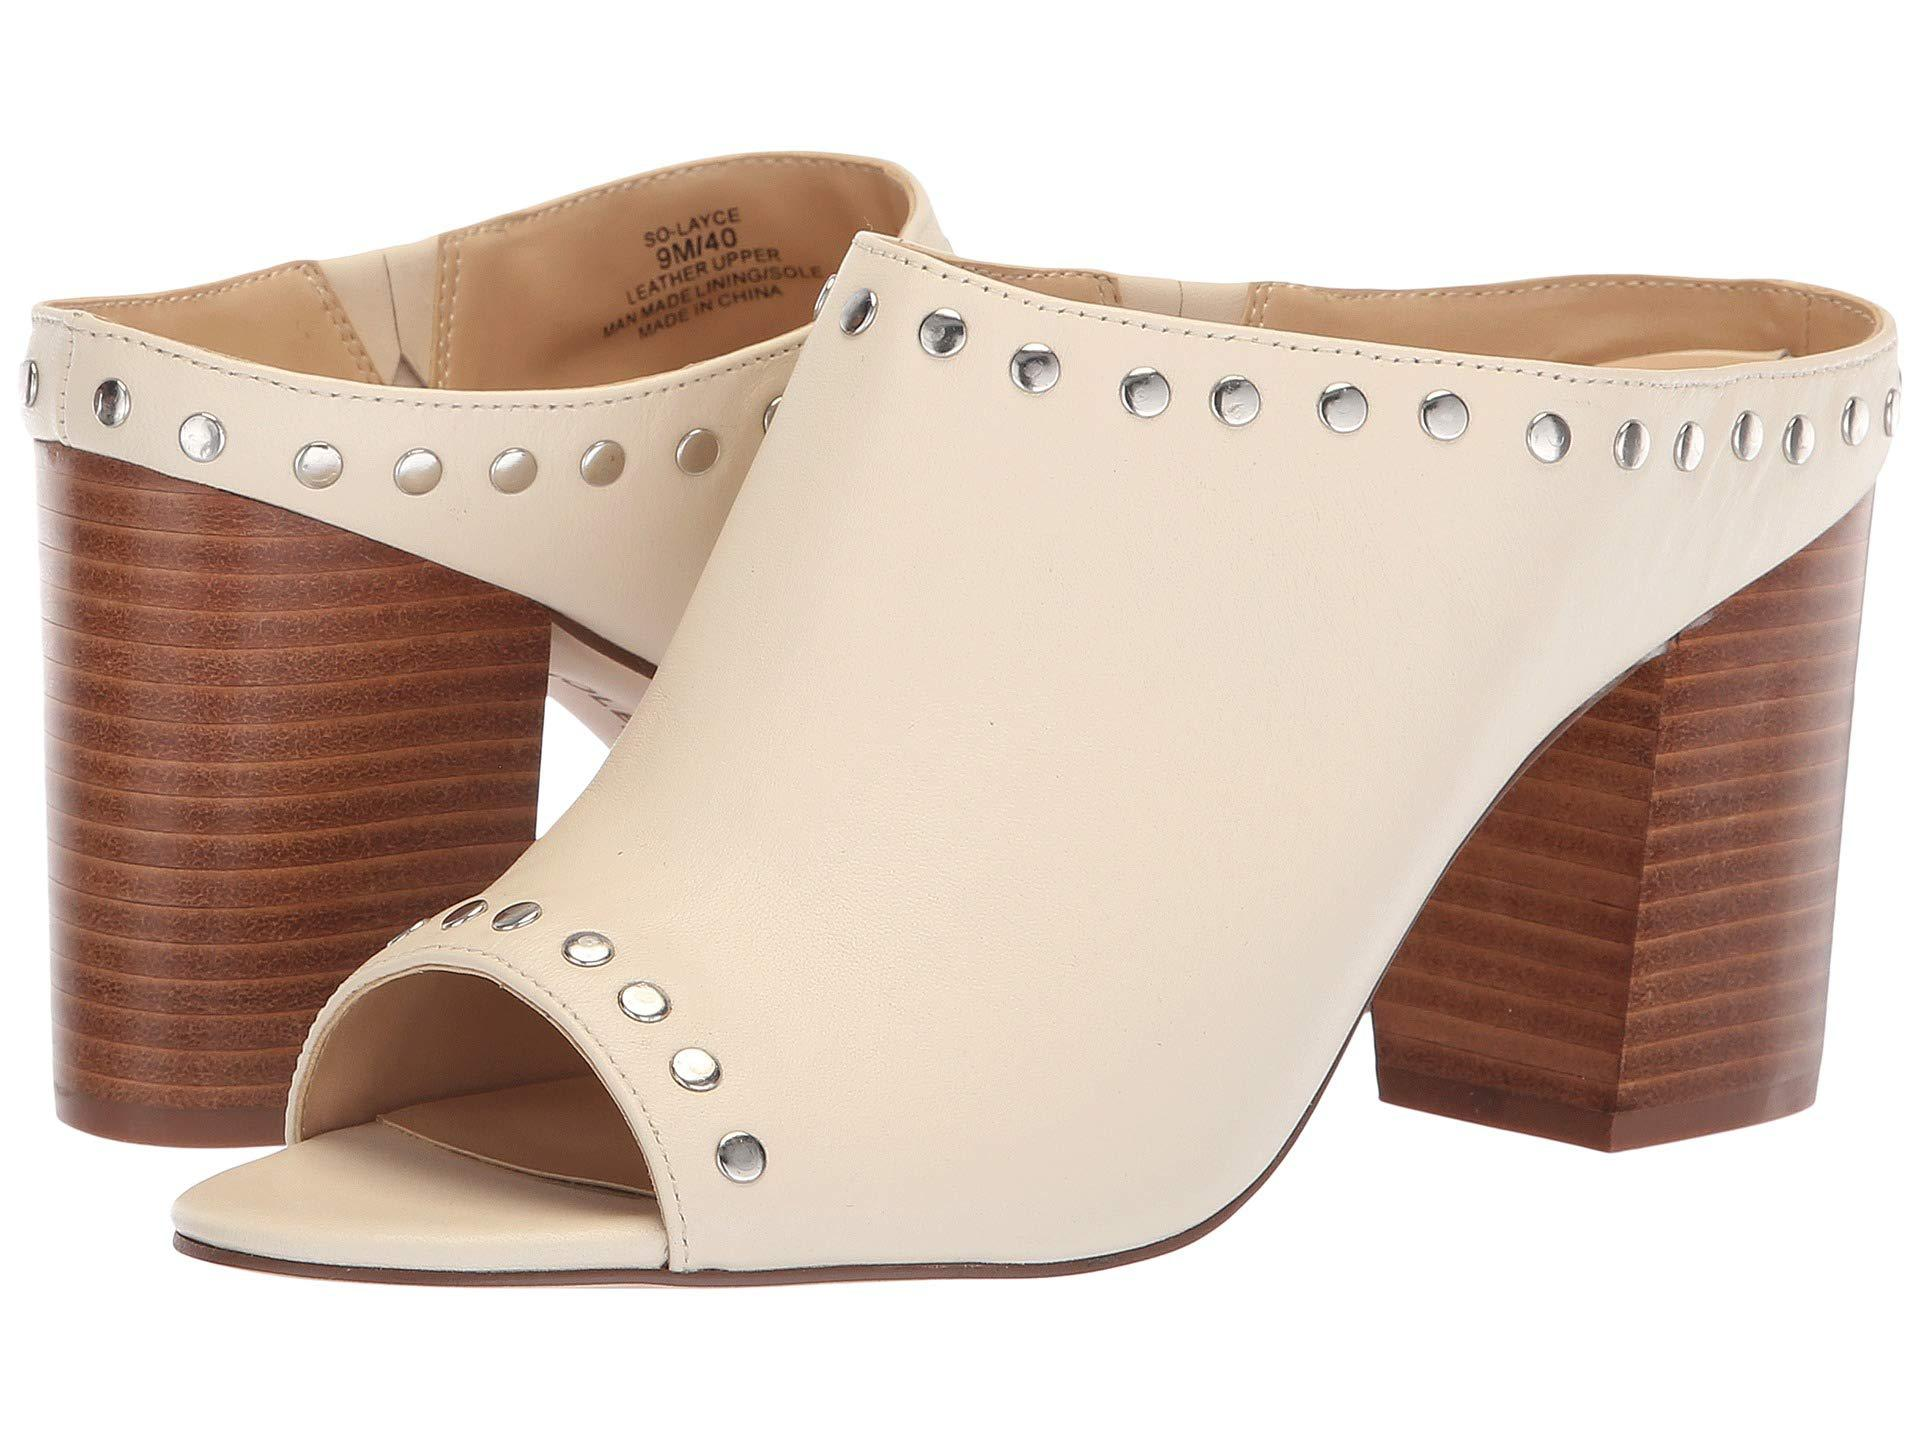 e2eb6a219f814f Lyst - Sole Society Layce (fall Taupe) Women s Sandals in Natural